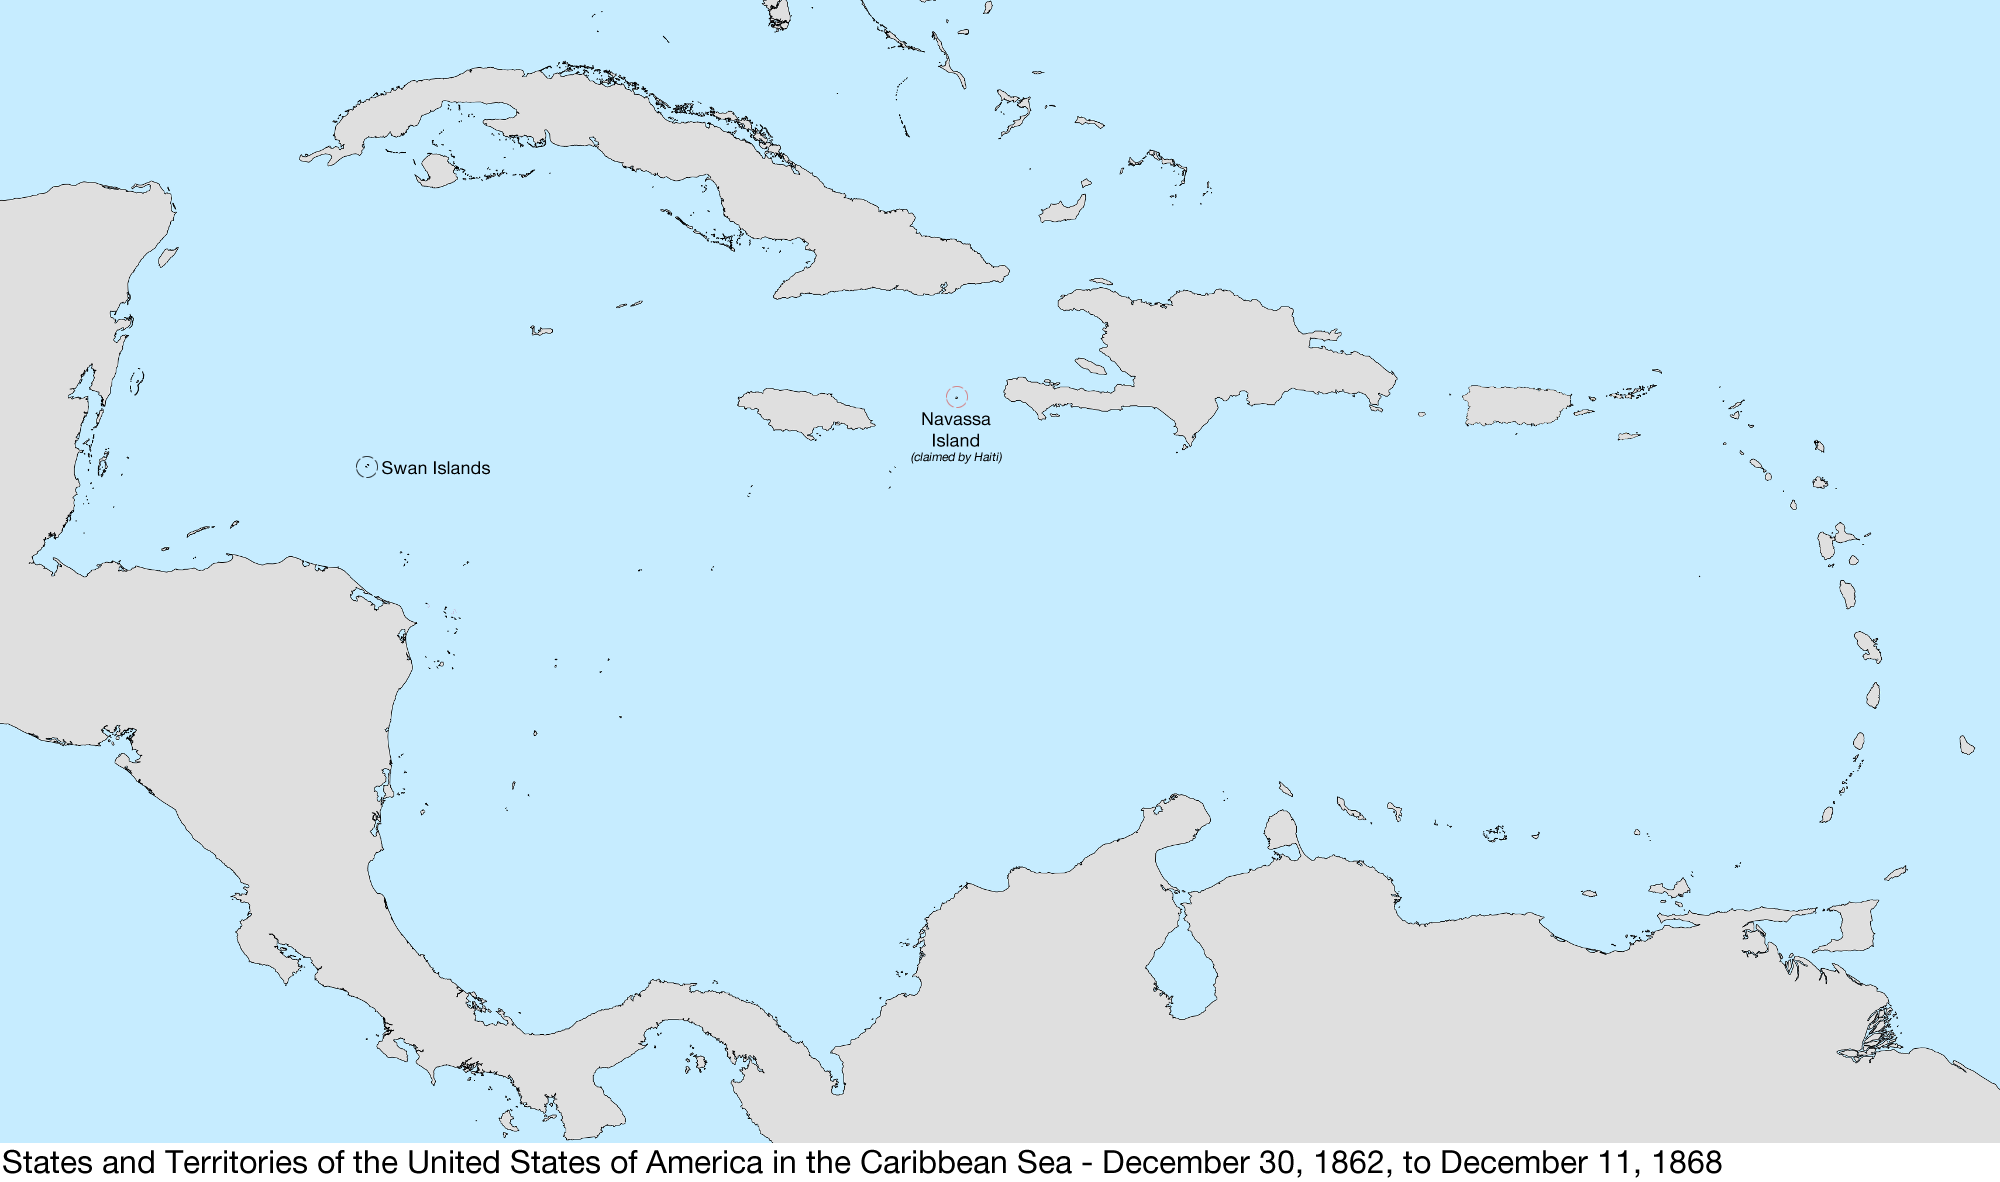 fileunited states caribbean map 1862 12 30 to 1868 12